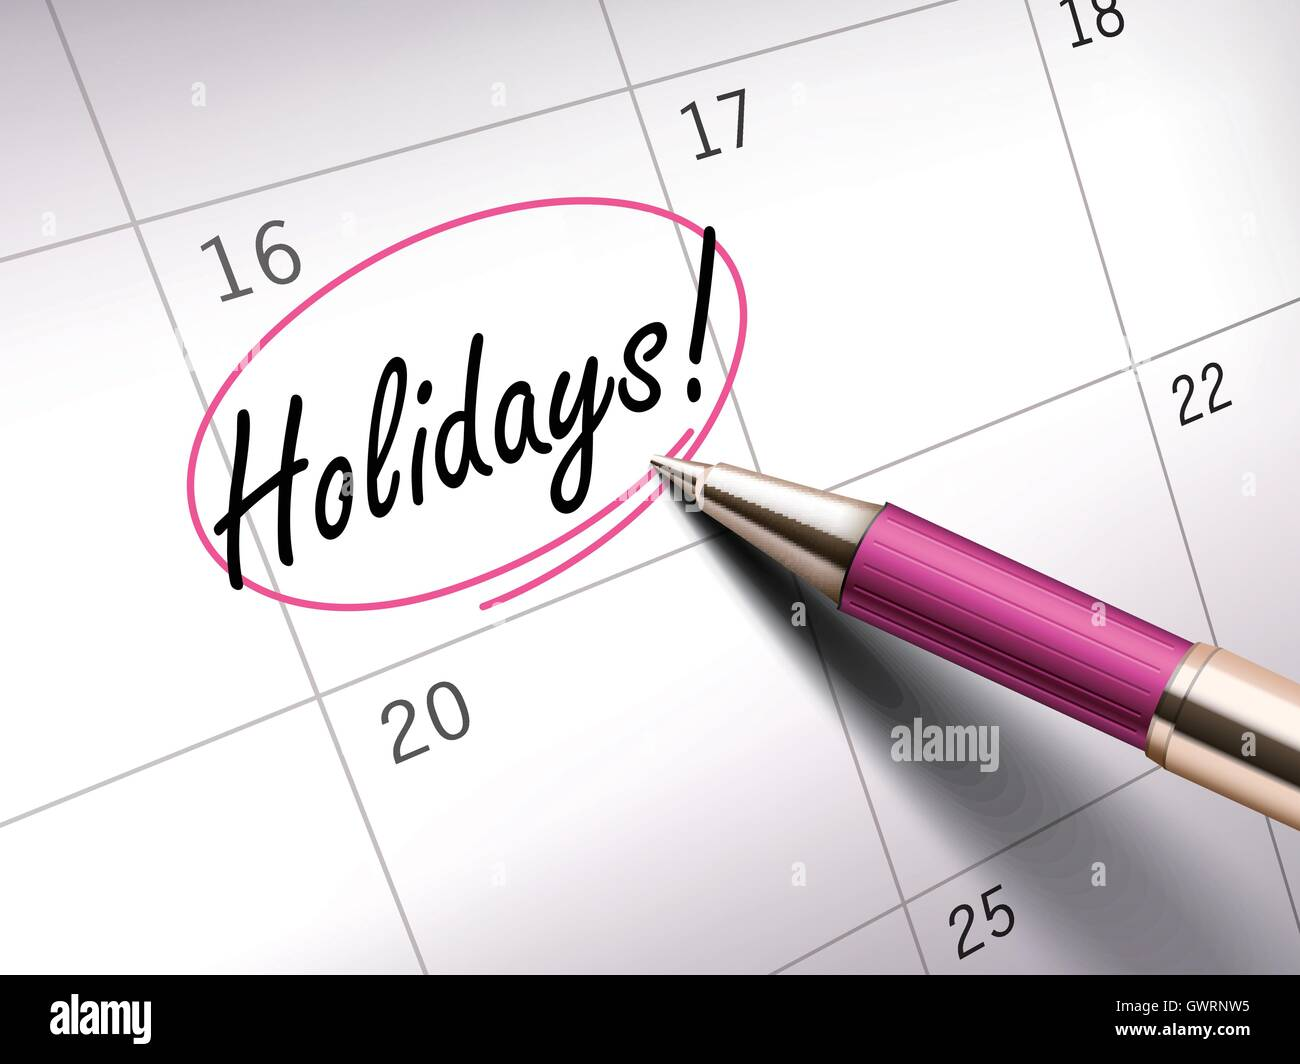 Holidays words circle marked on a calendar by a pink ballpoint pen - Stock Vector